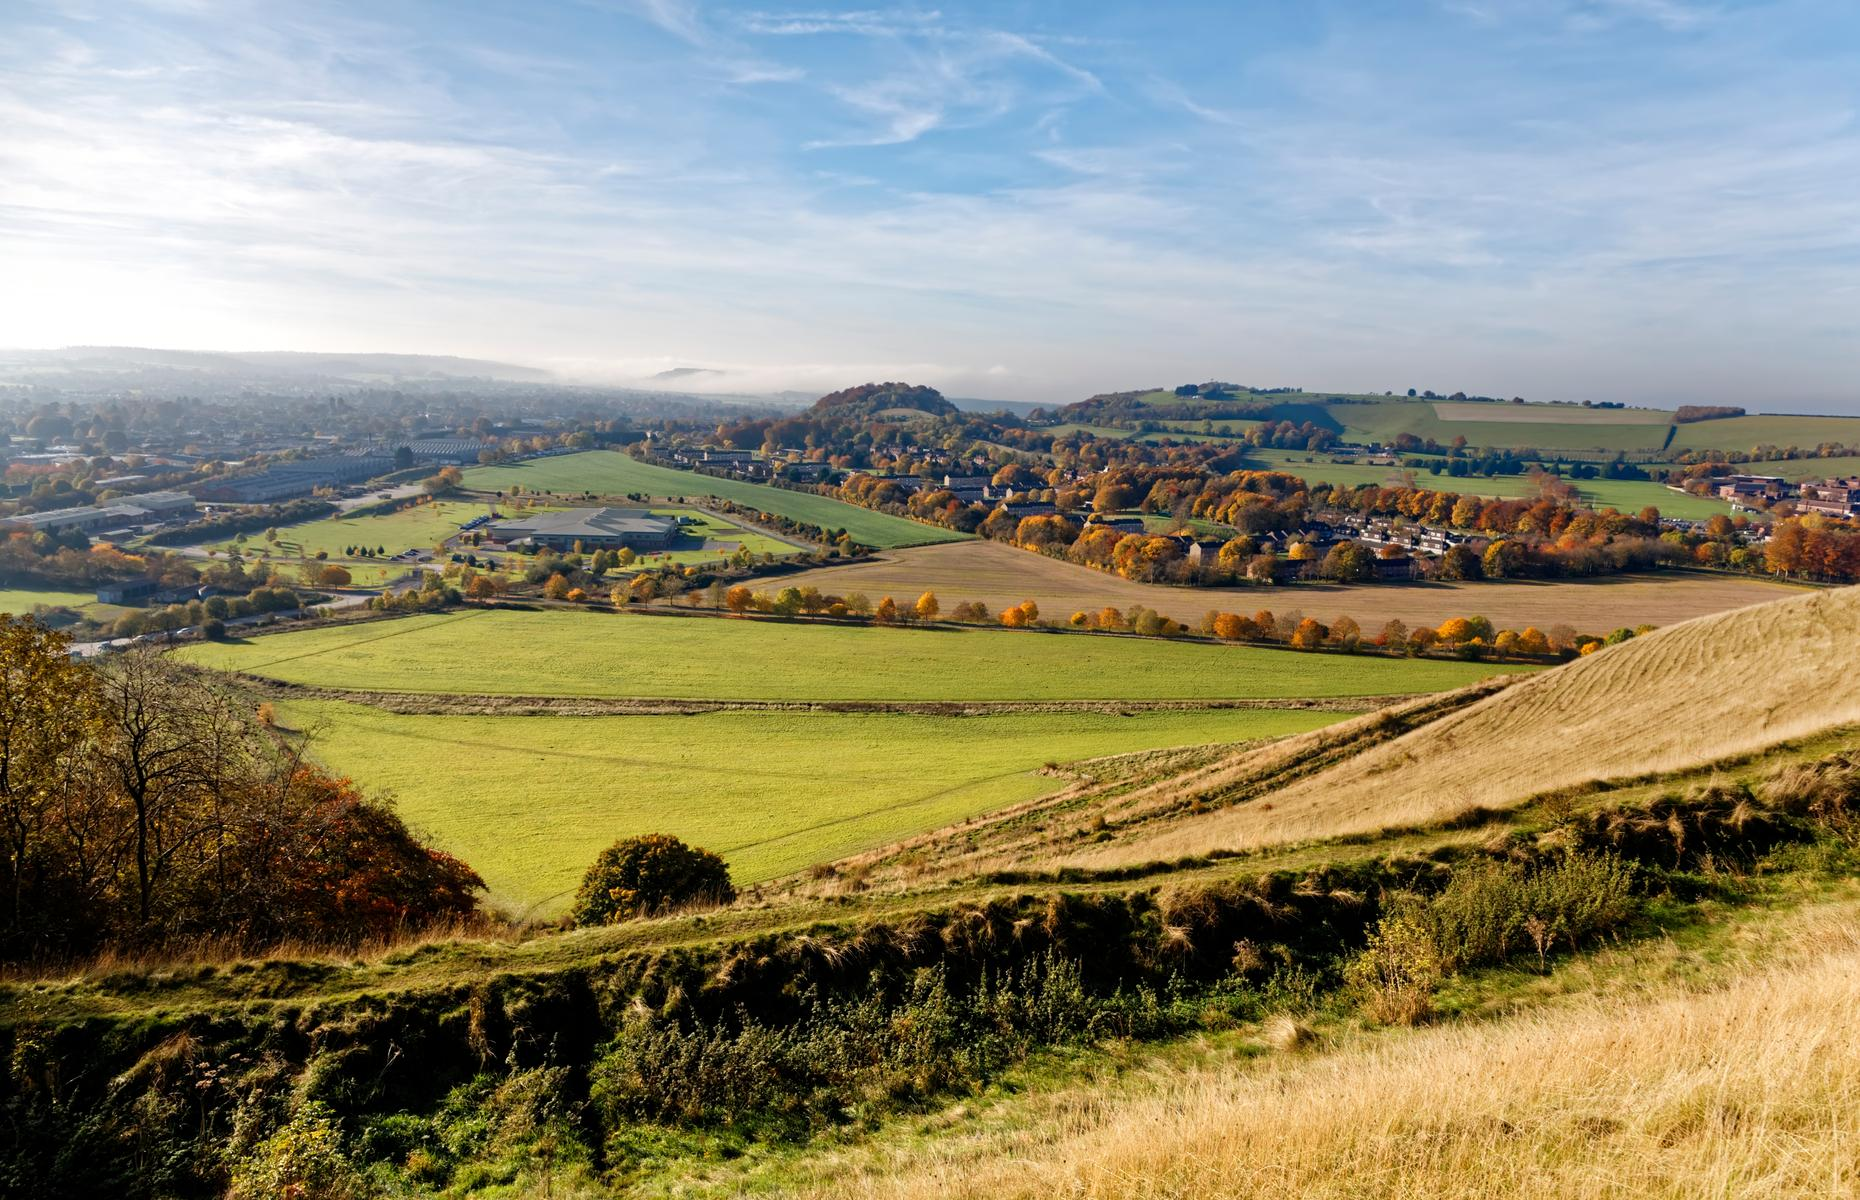 Cley Hill in Somerset (Image: Andrew Harker/Shutterstock)